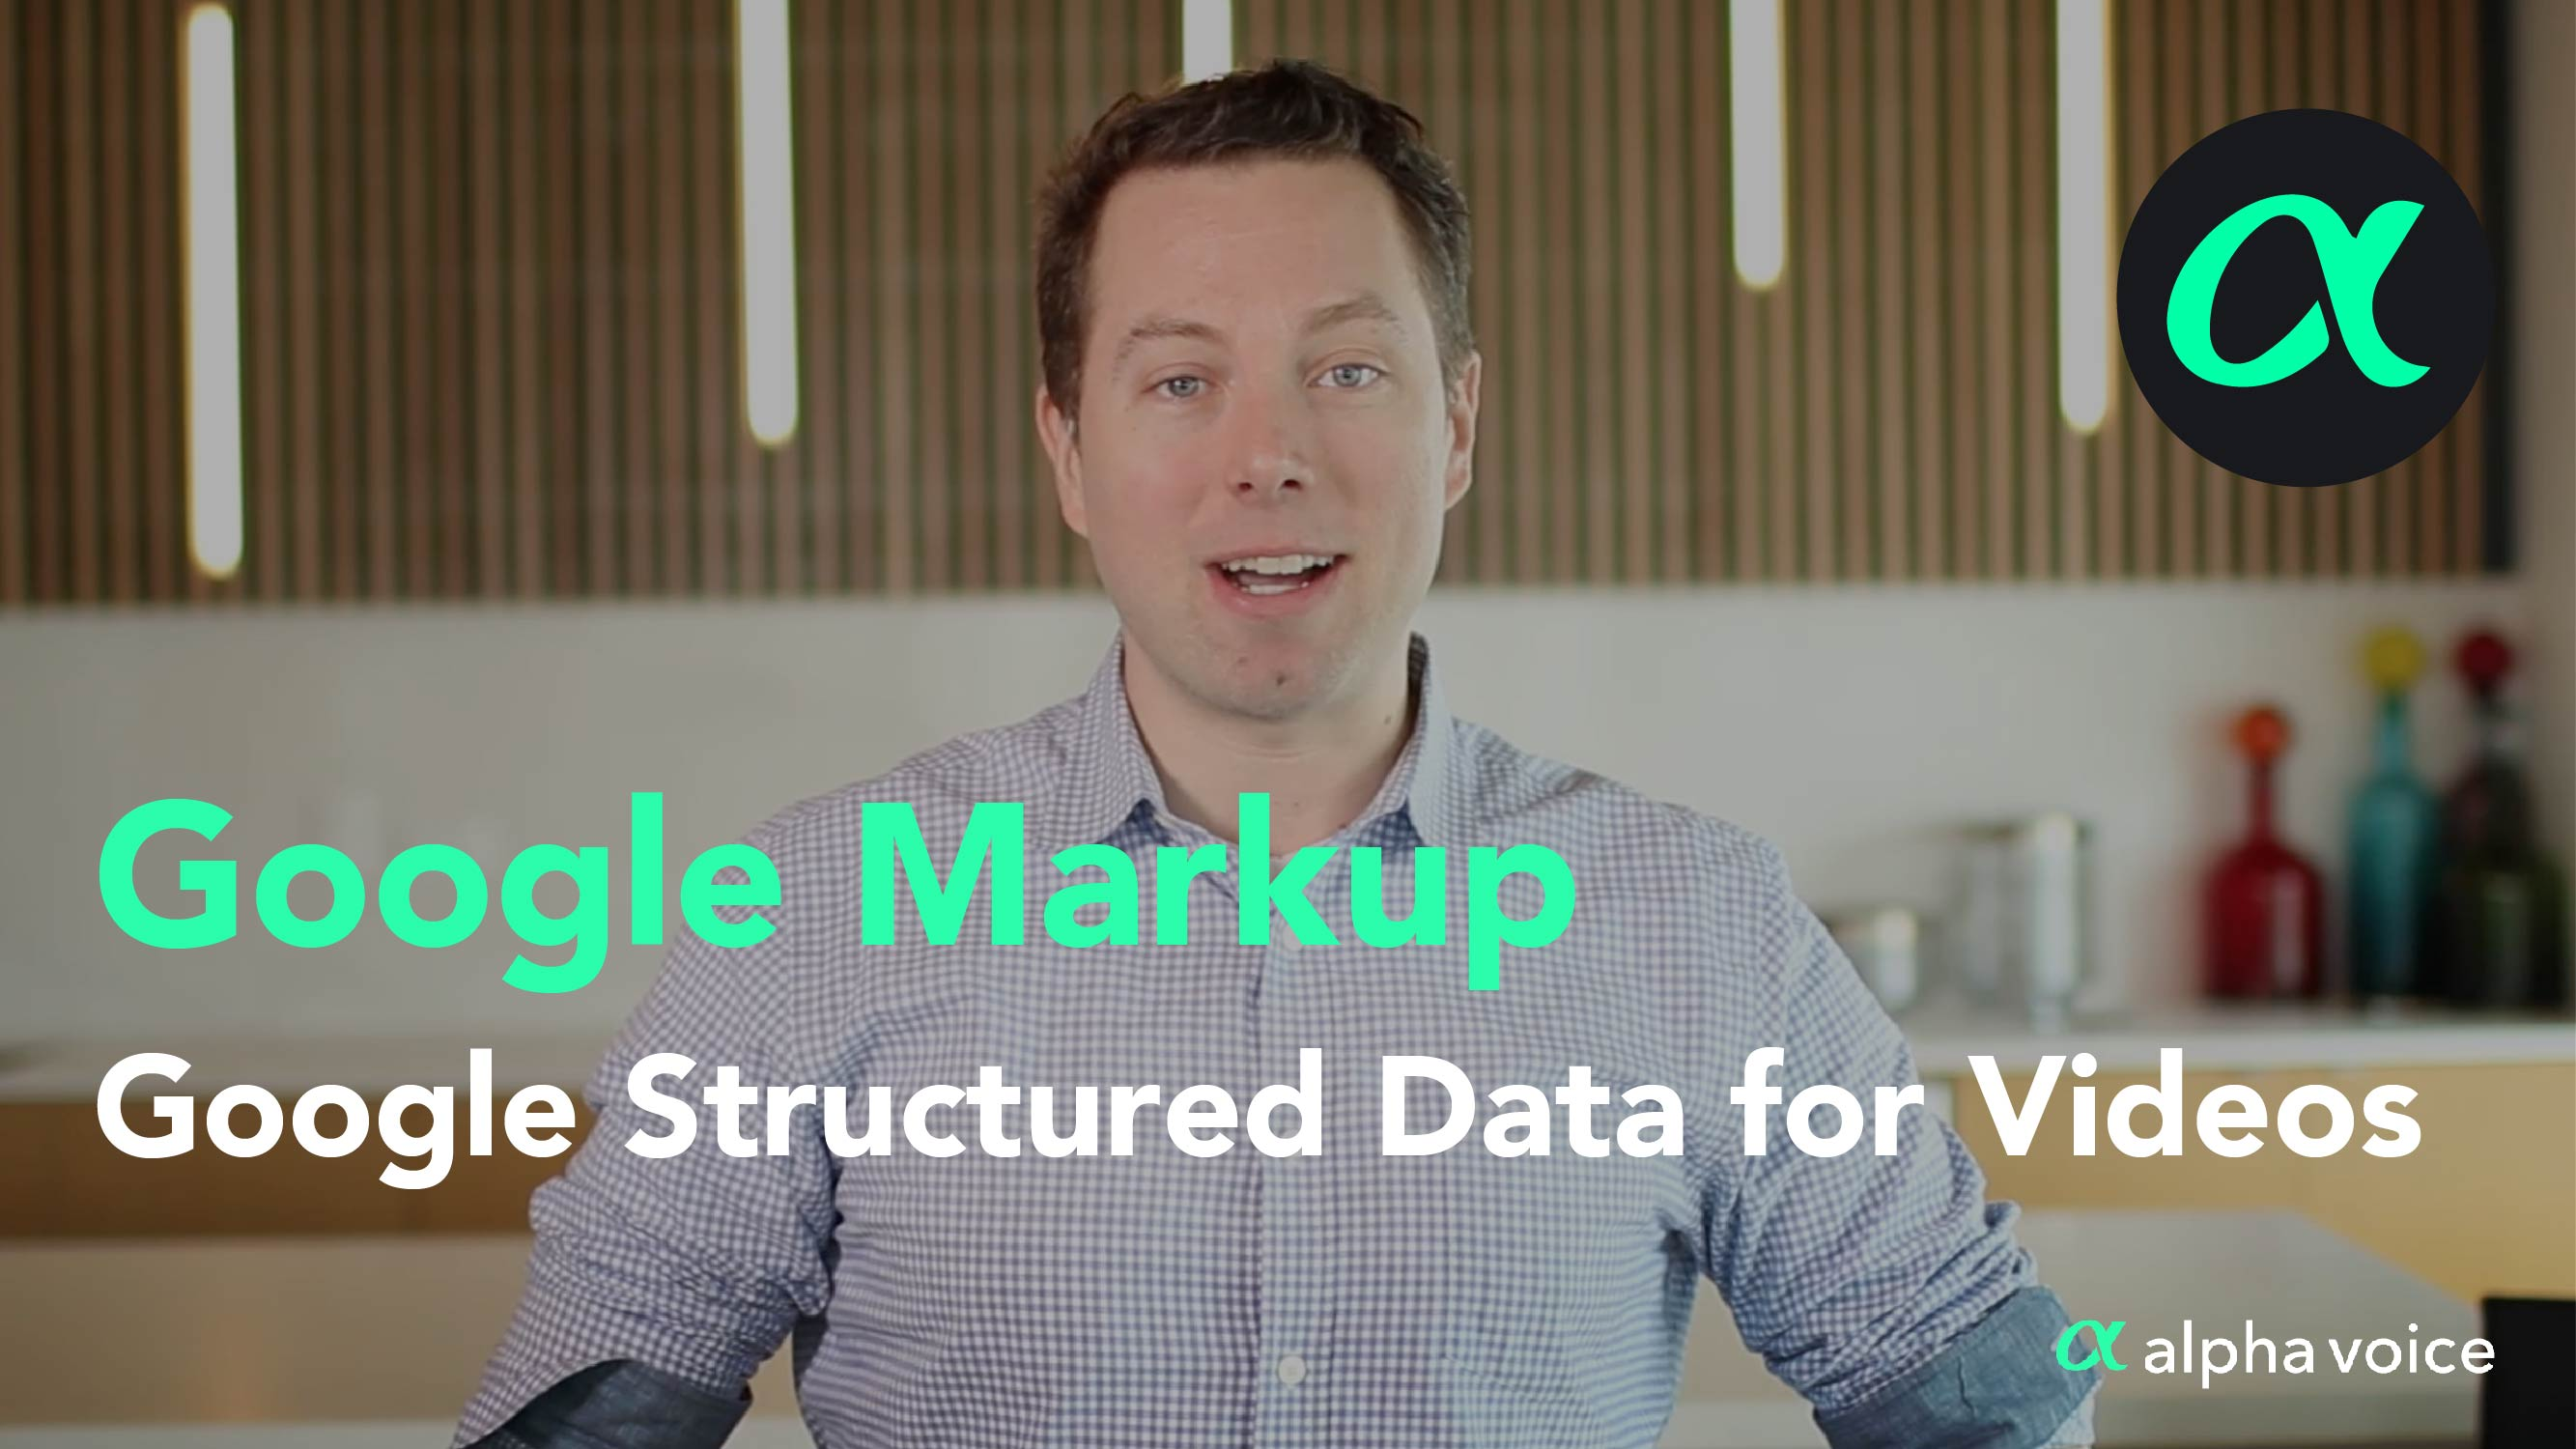 Google Markup - Google Structured Data for Videos | AlphaVoice